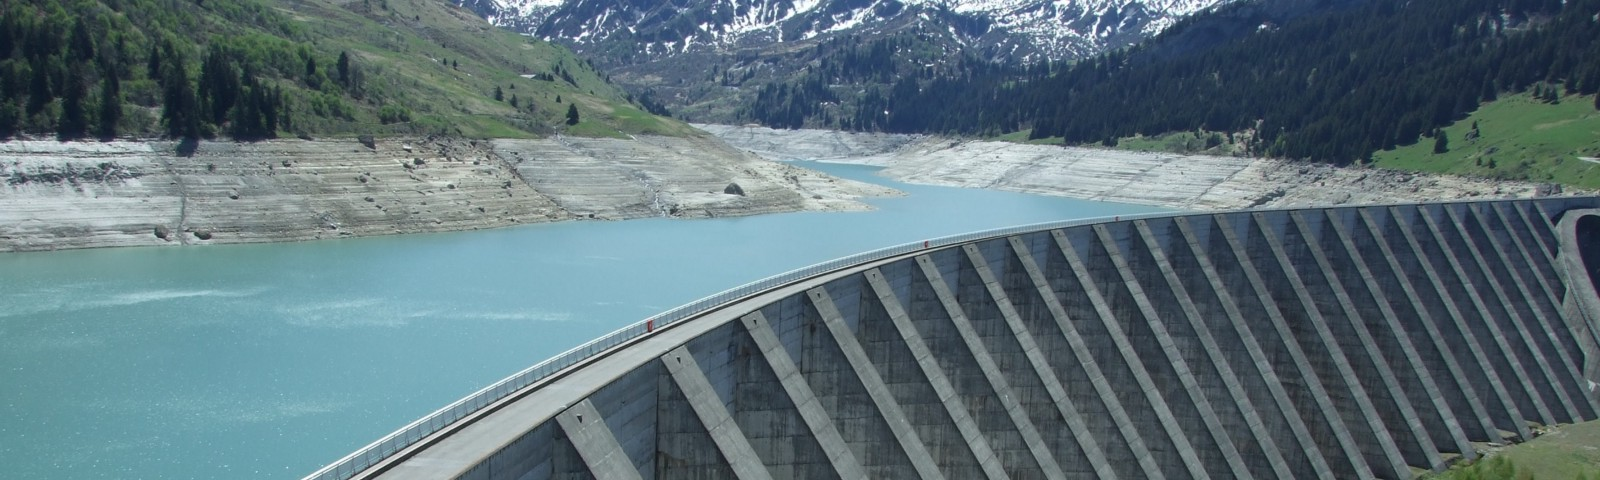 A dam with mountains in the background